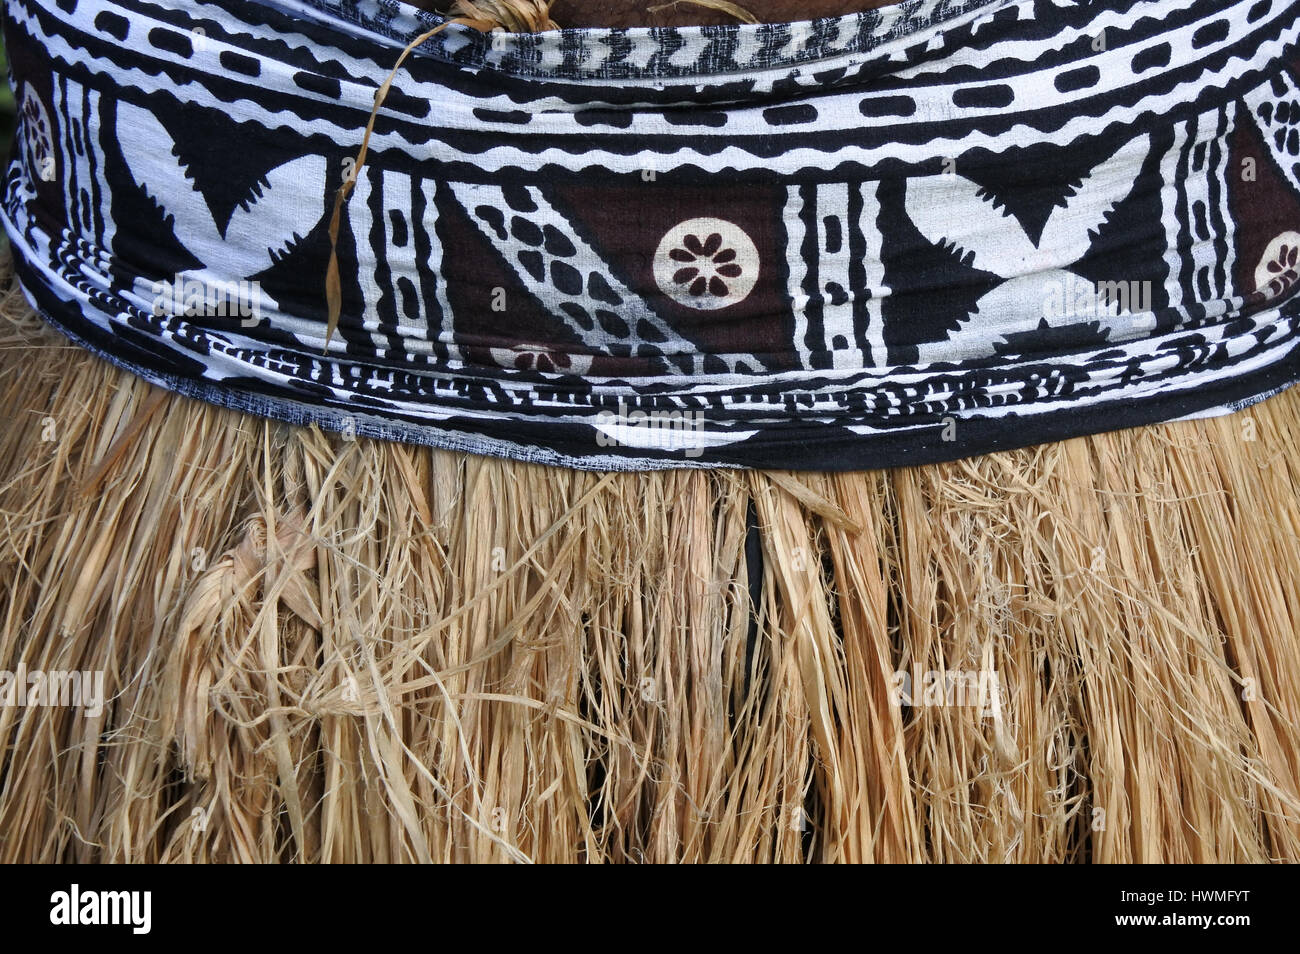 52bfd48ead4 Background of traditional Pacific Island straw skirt and tapa cloth ...